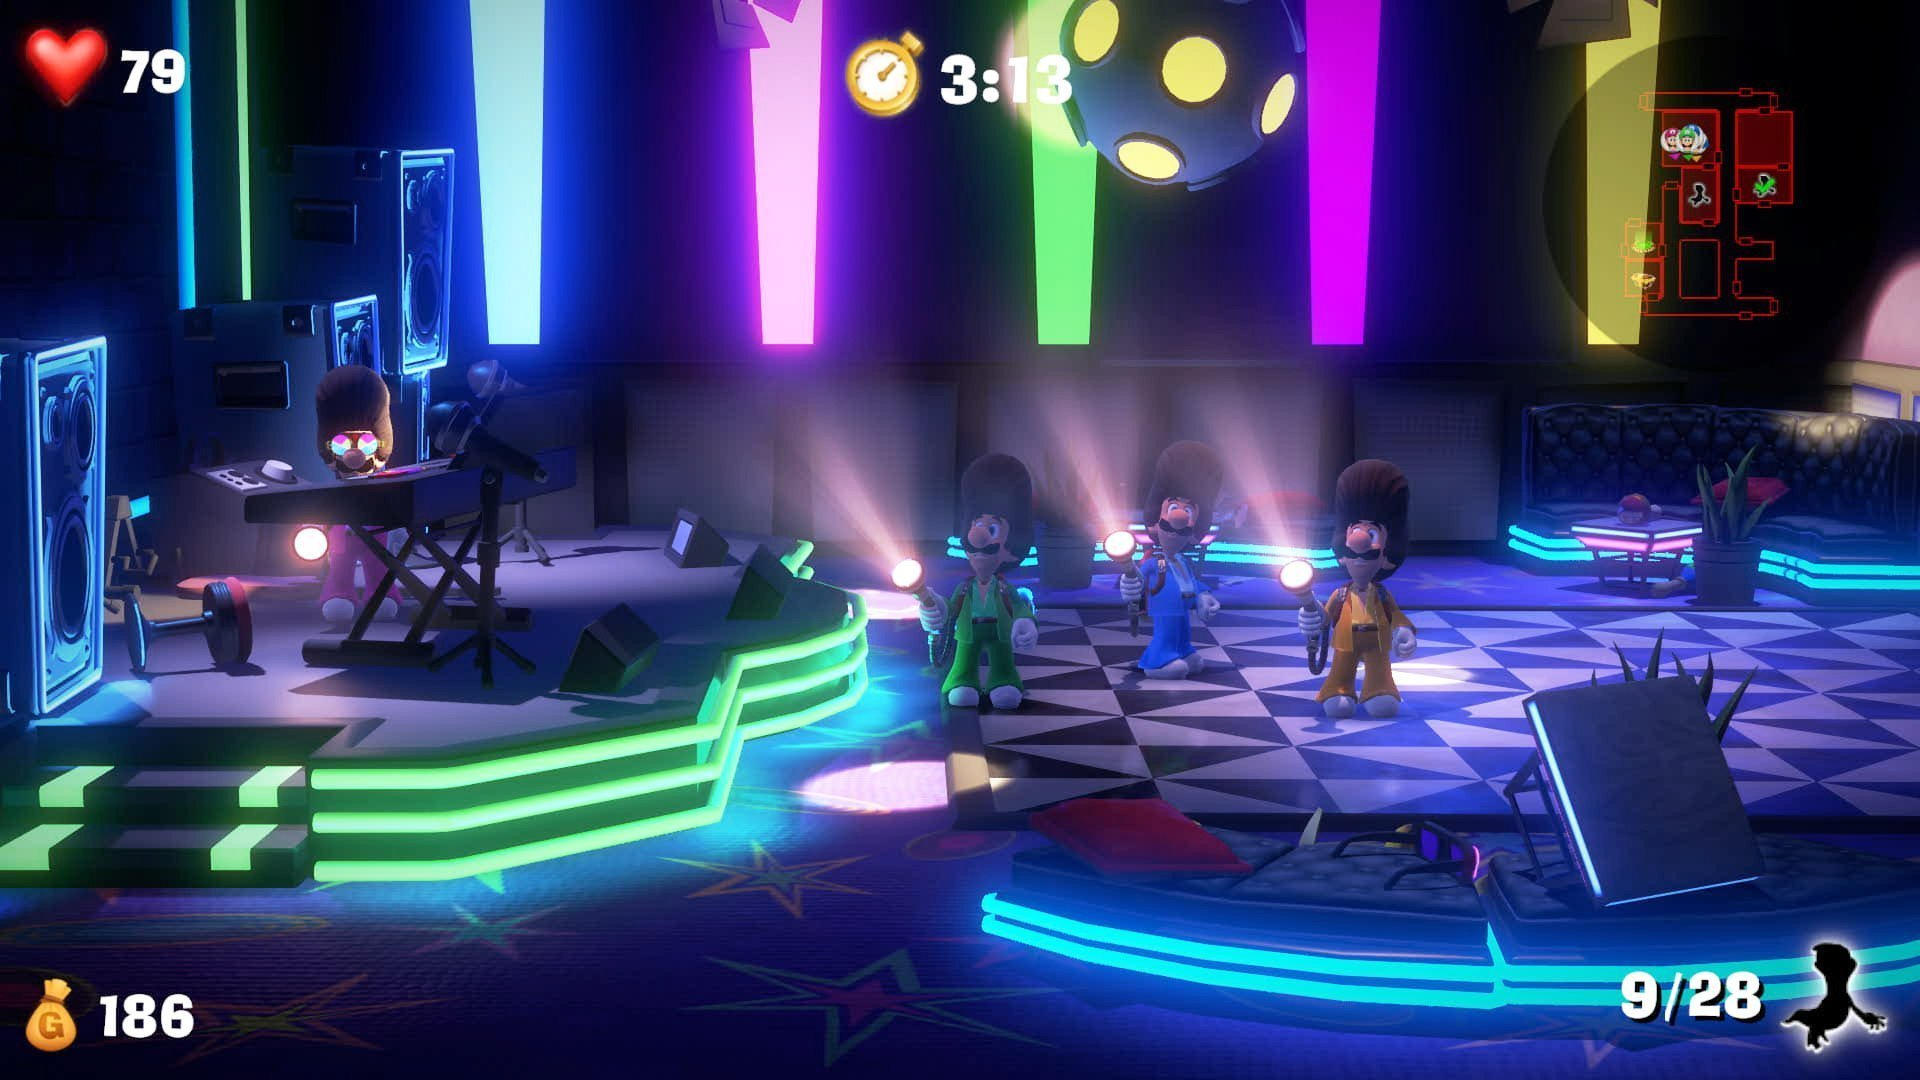 Luigi's Mansion 3 DLC includes new costumes and dope hairdos